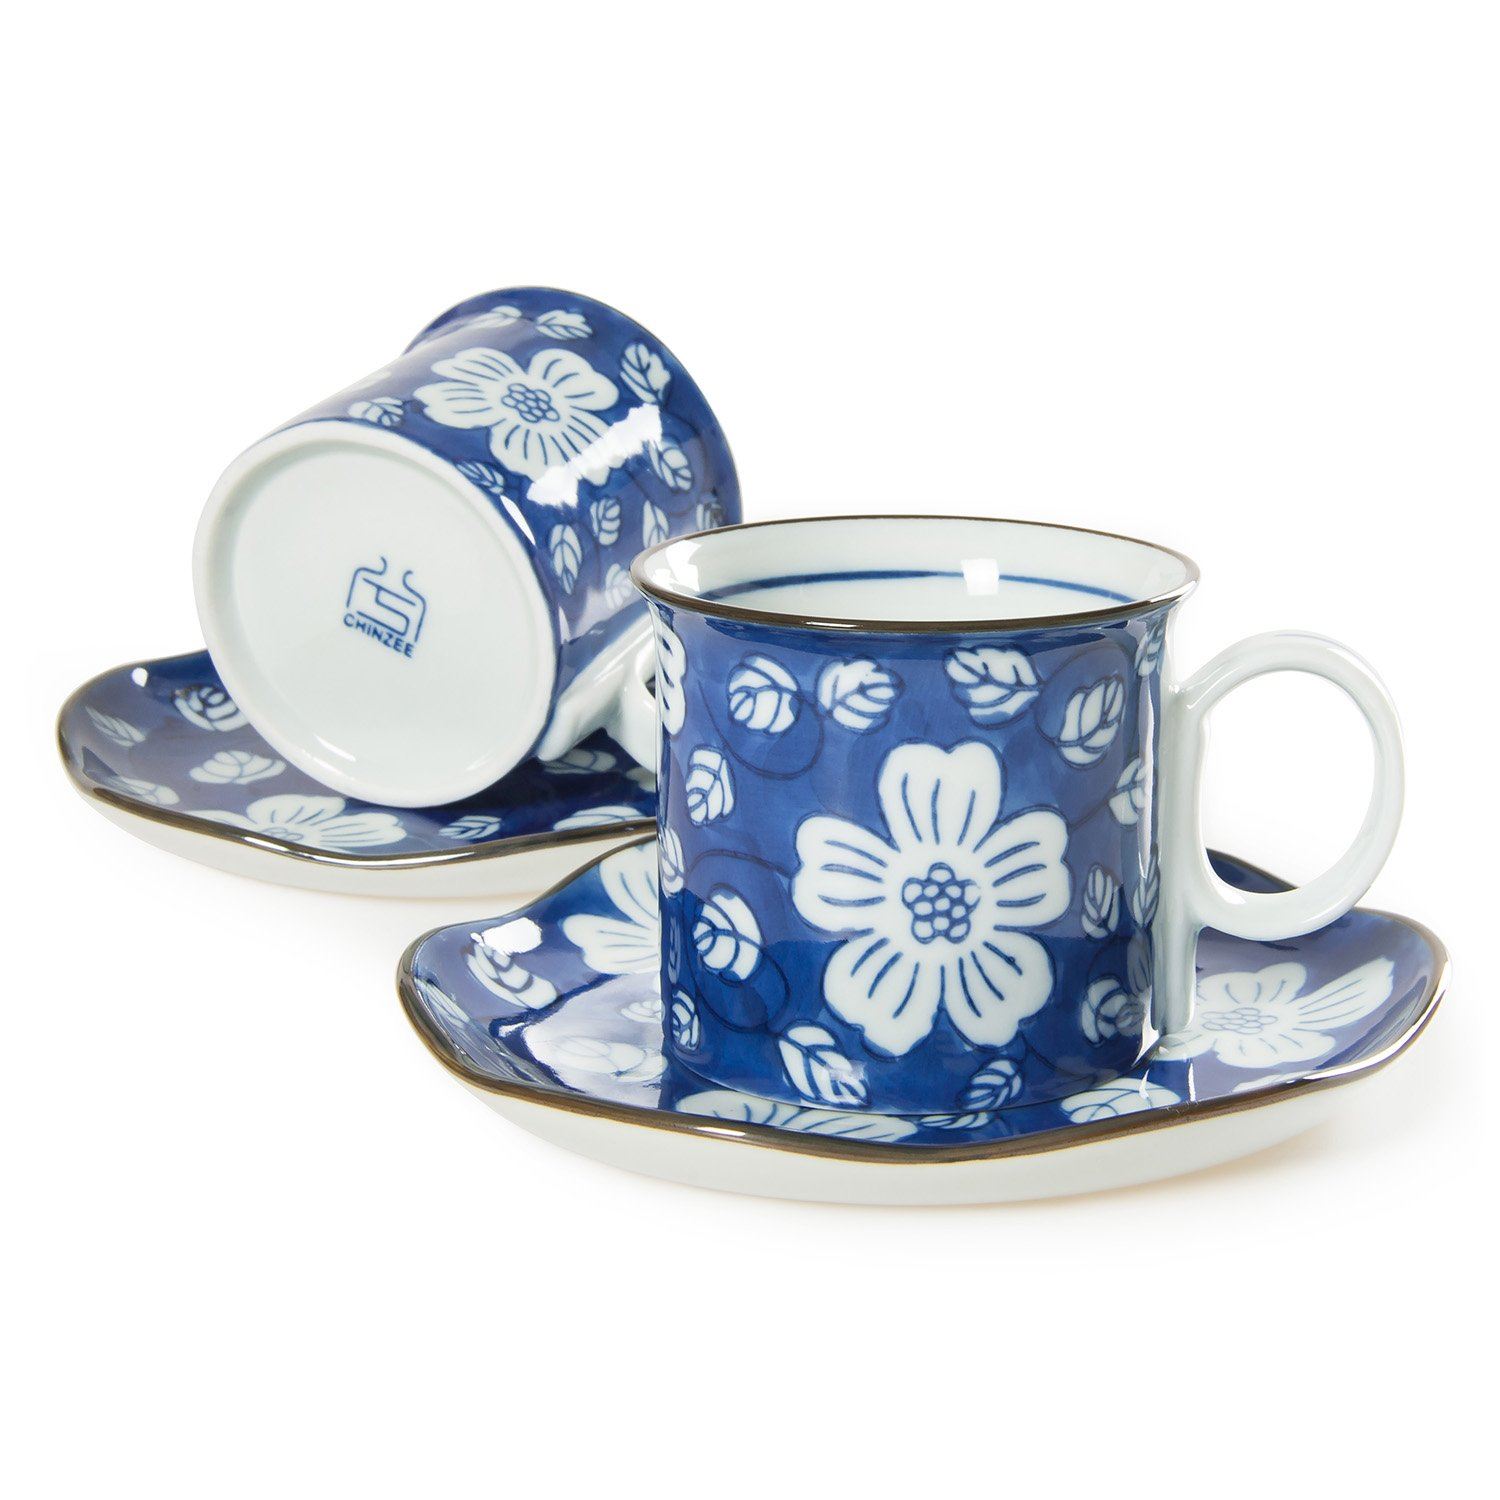 CHINZEE Coffee Cups & Saucers Porcelain Mugs Set of 2 - Wedding Gifts Birthday Present Mothers Day Gift Box